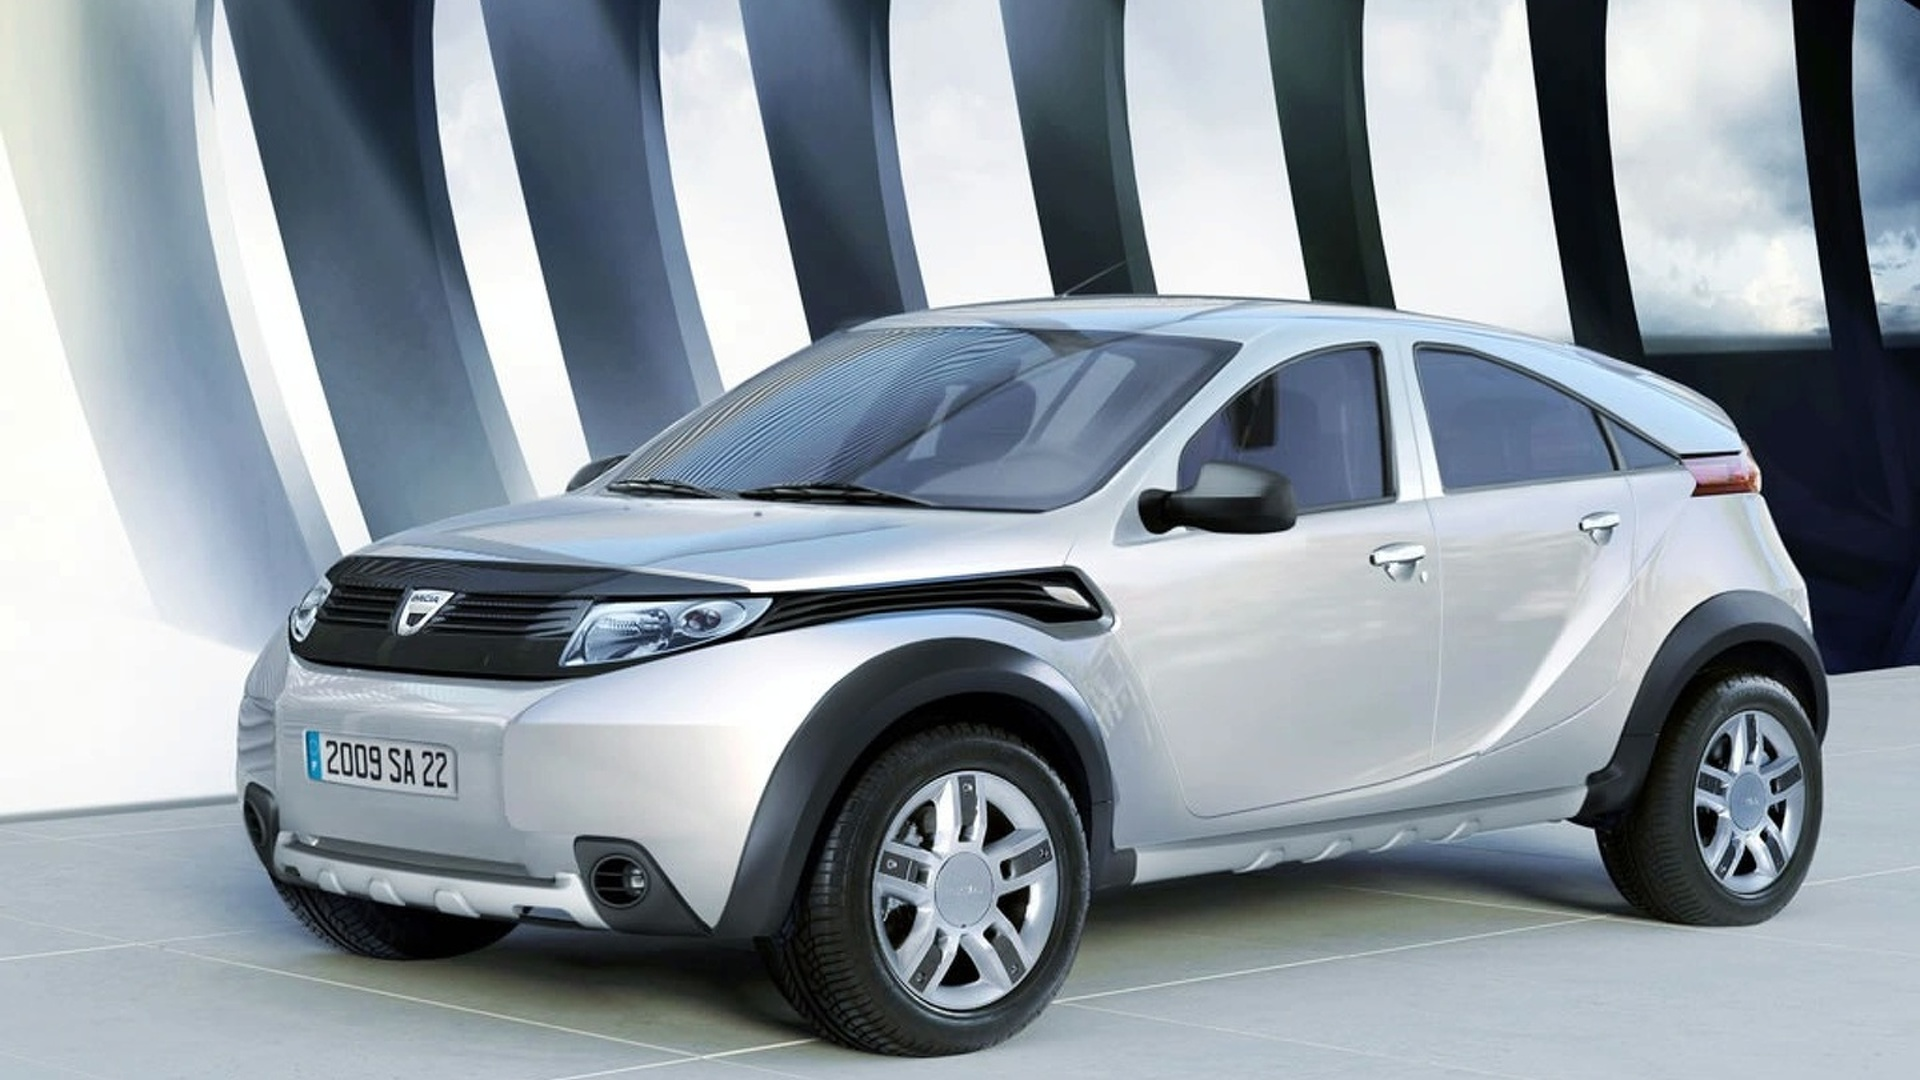 alleged dacia duster suv production version leaked. Black Bedroom Furniture Sets. Home Design Ideas